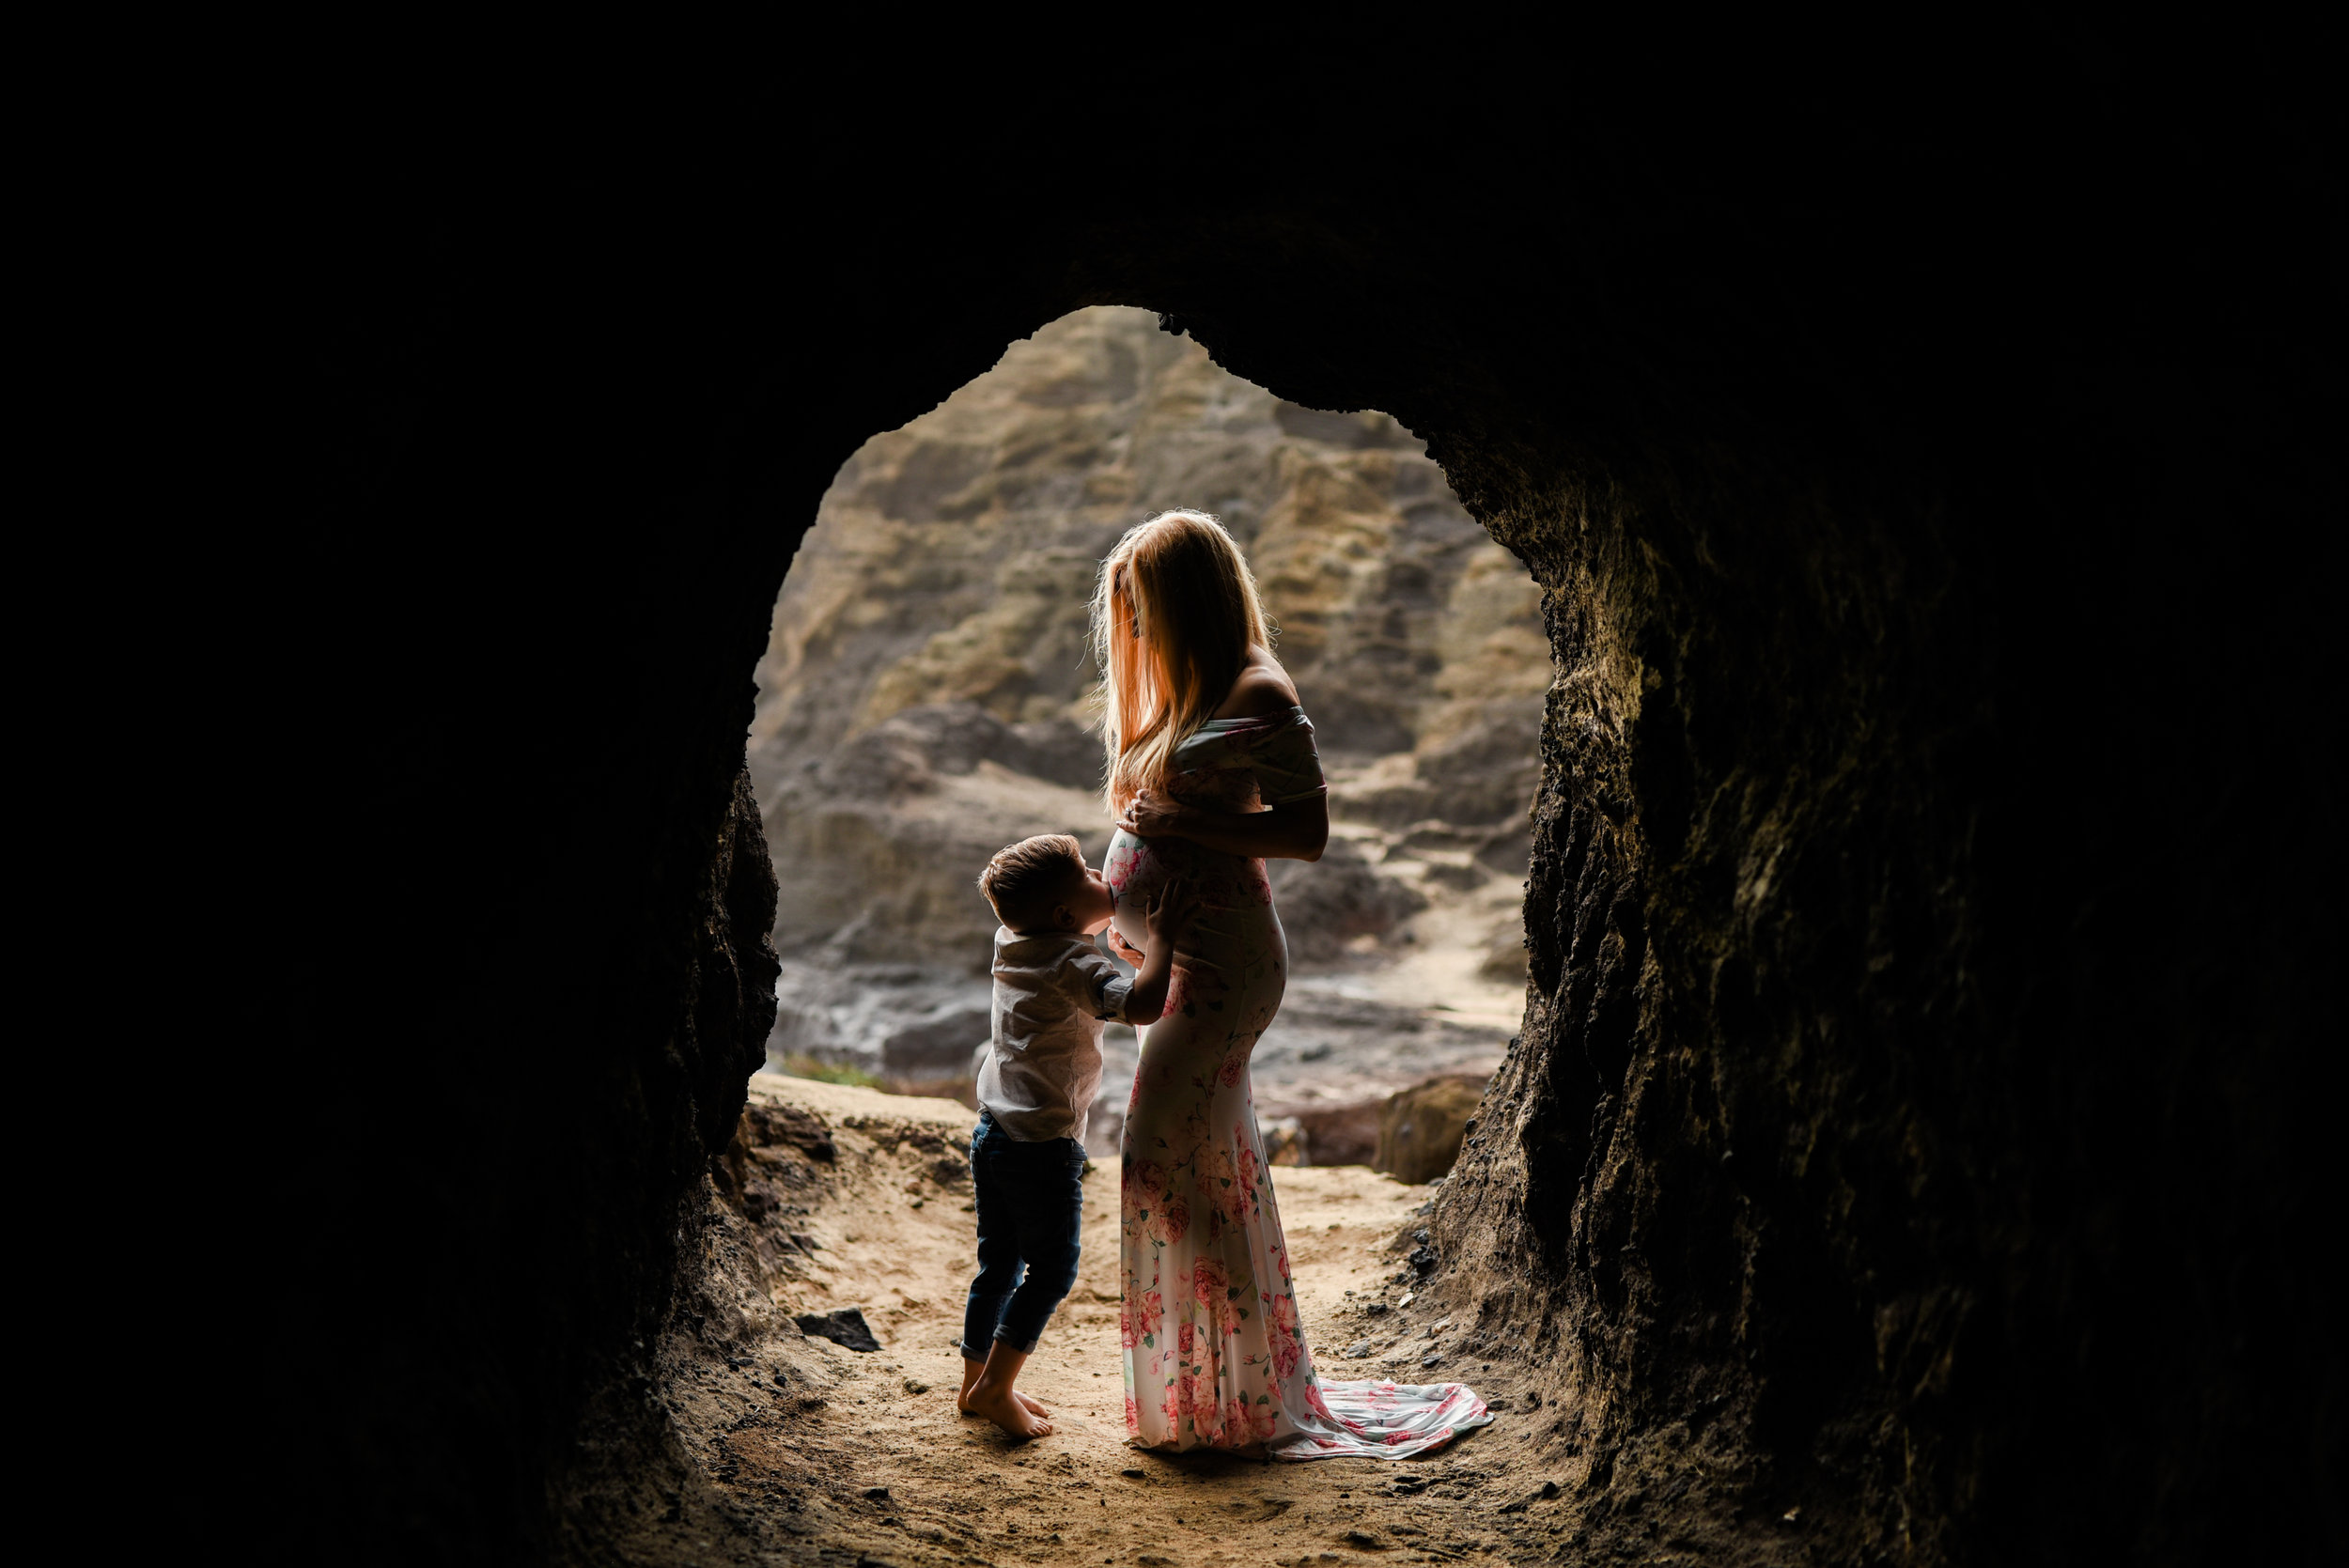 sarah_lynn_photography_maternity_photographer_oahu_hawaii